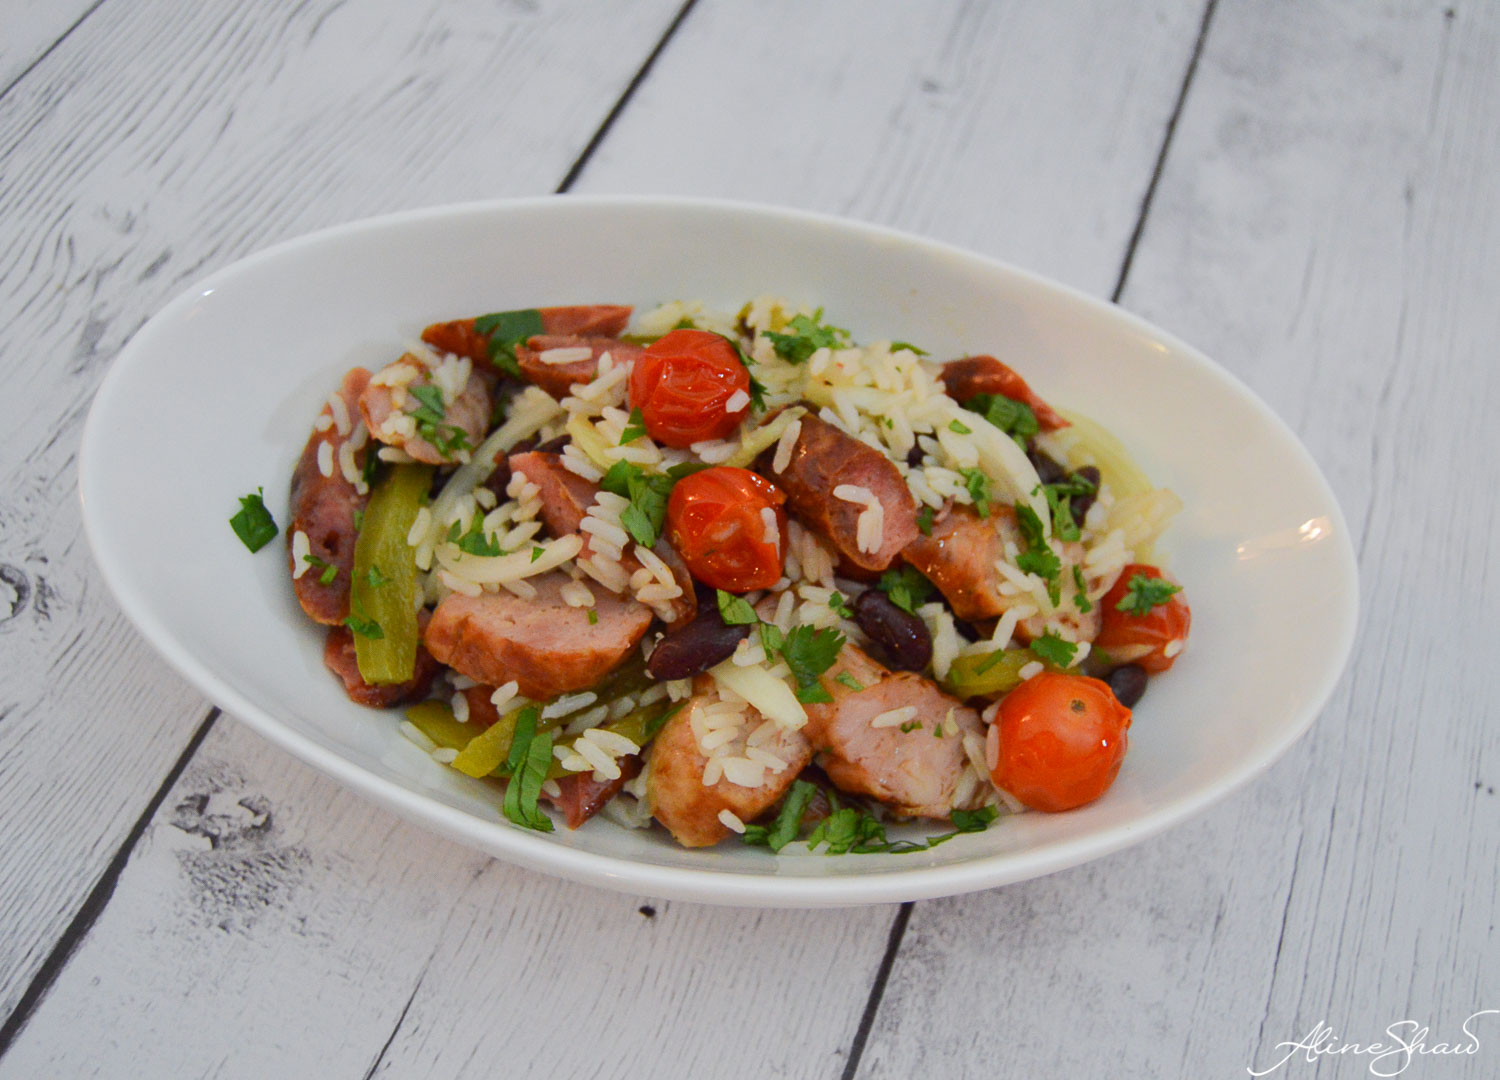 warm salad and brazilian sausages